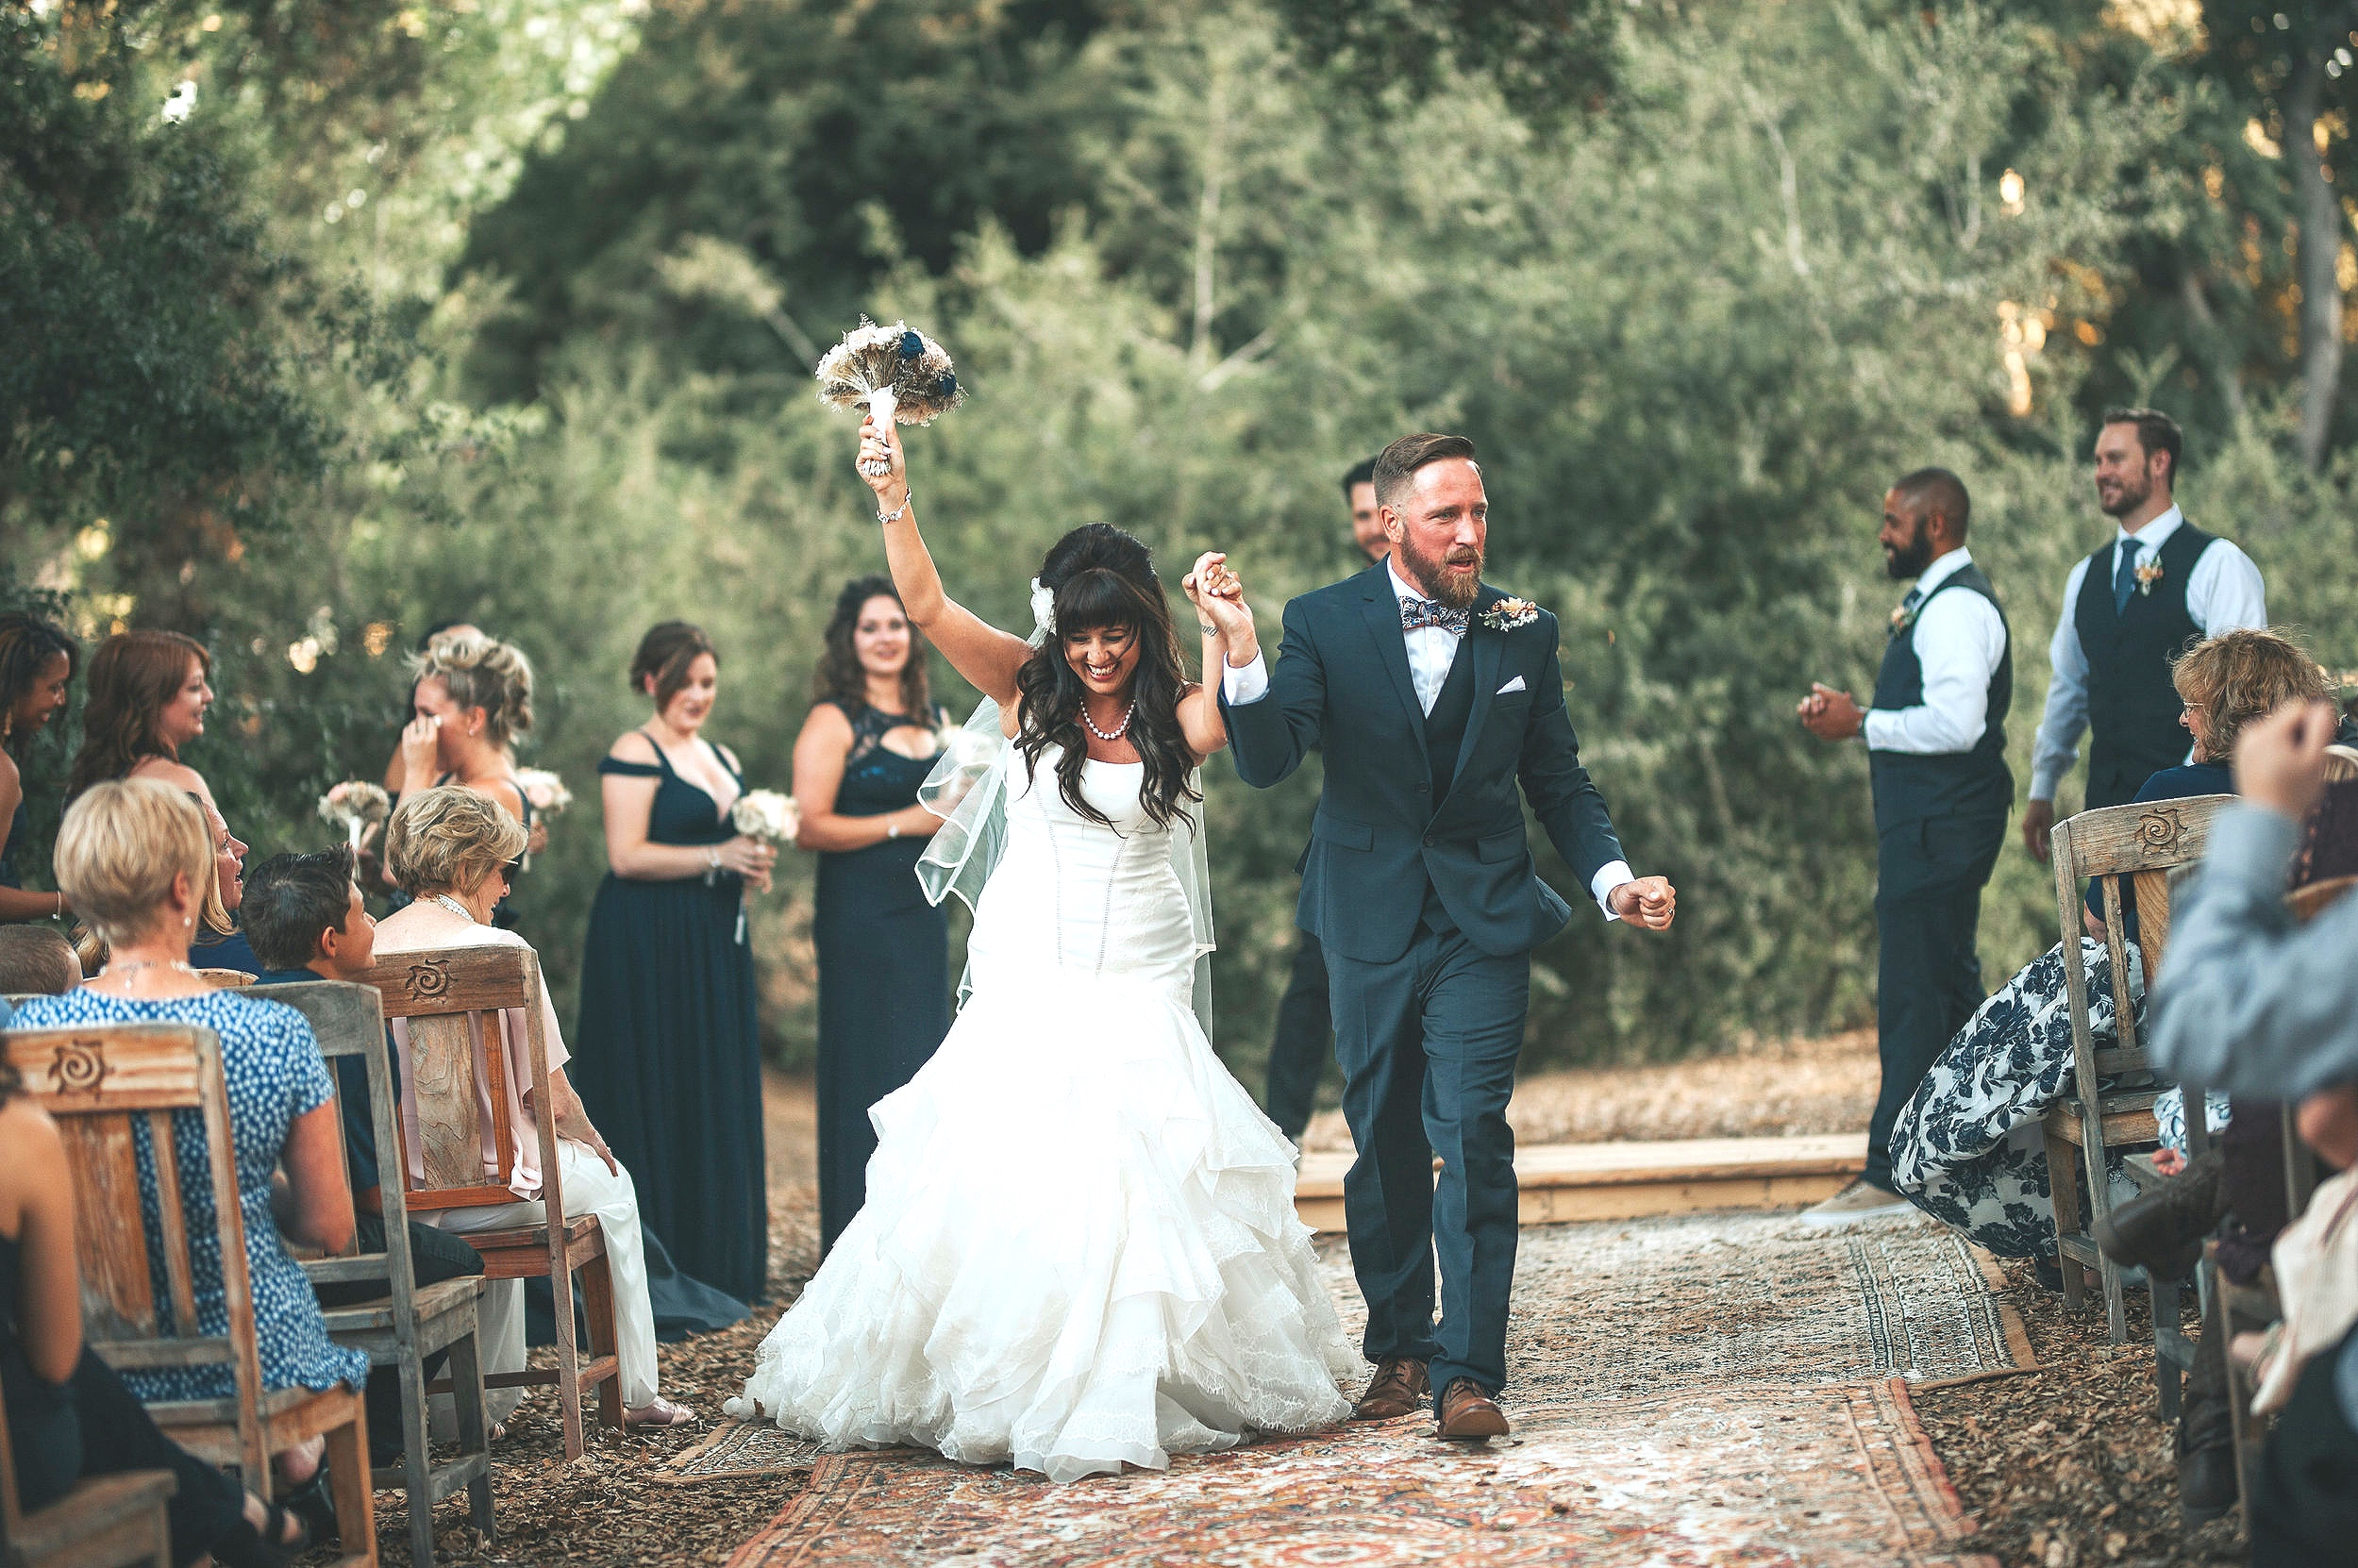 Bride and groom walking down the aisle made of vintage rugs in the Temecula Valley.